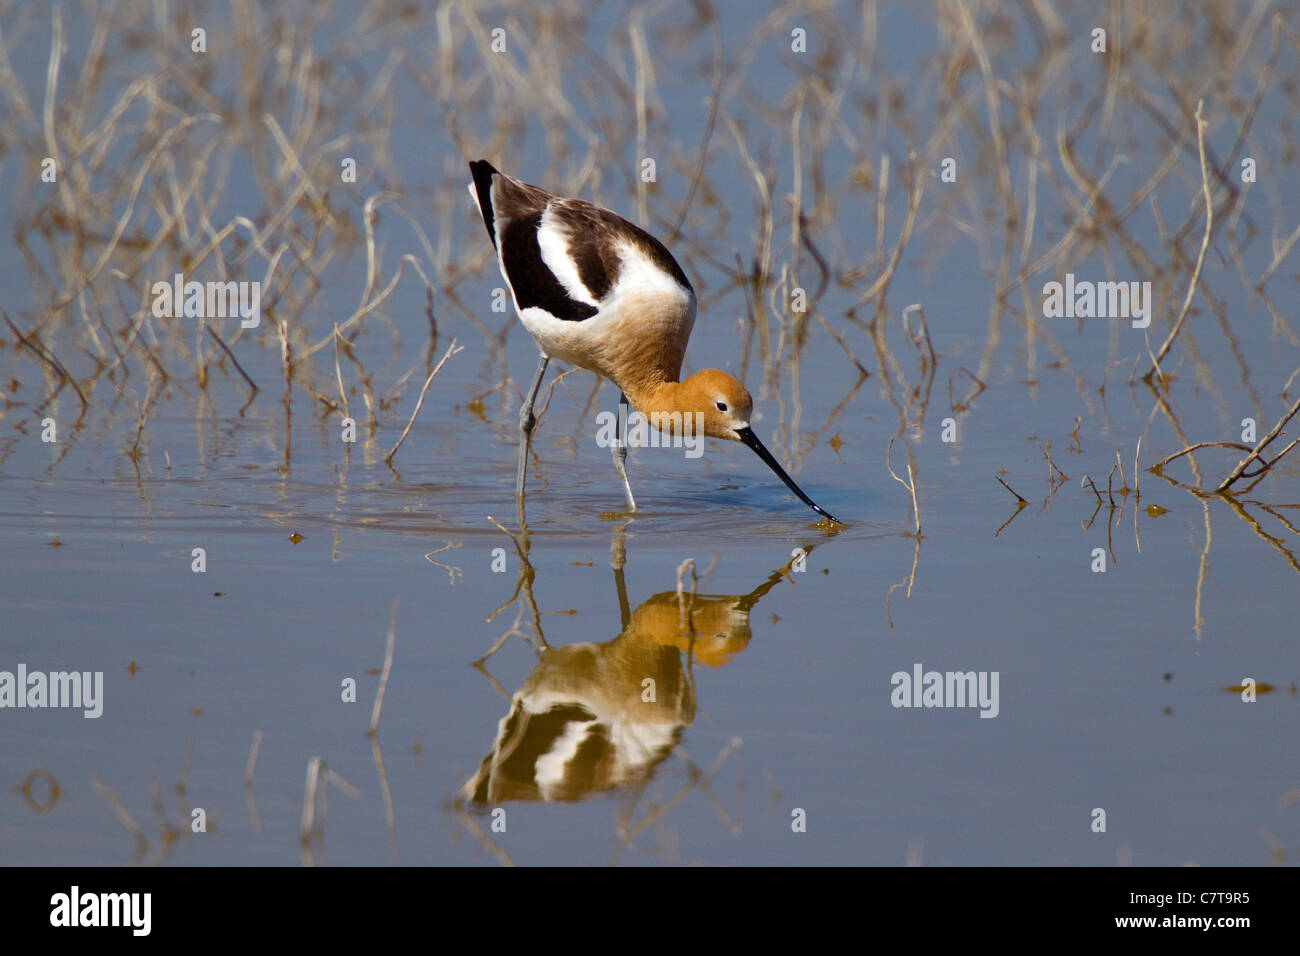 American Avocet Recurvirostra americana Klamath Falls, Oregon, United States 9 May Adult Male in breeding plumage. - Stock Image